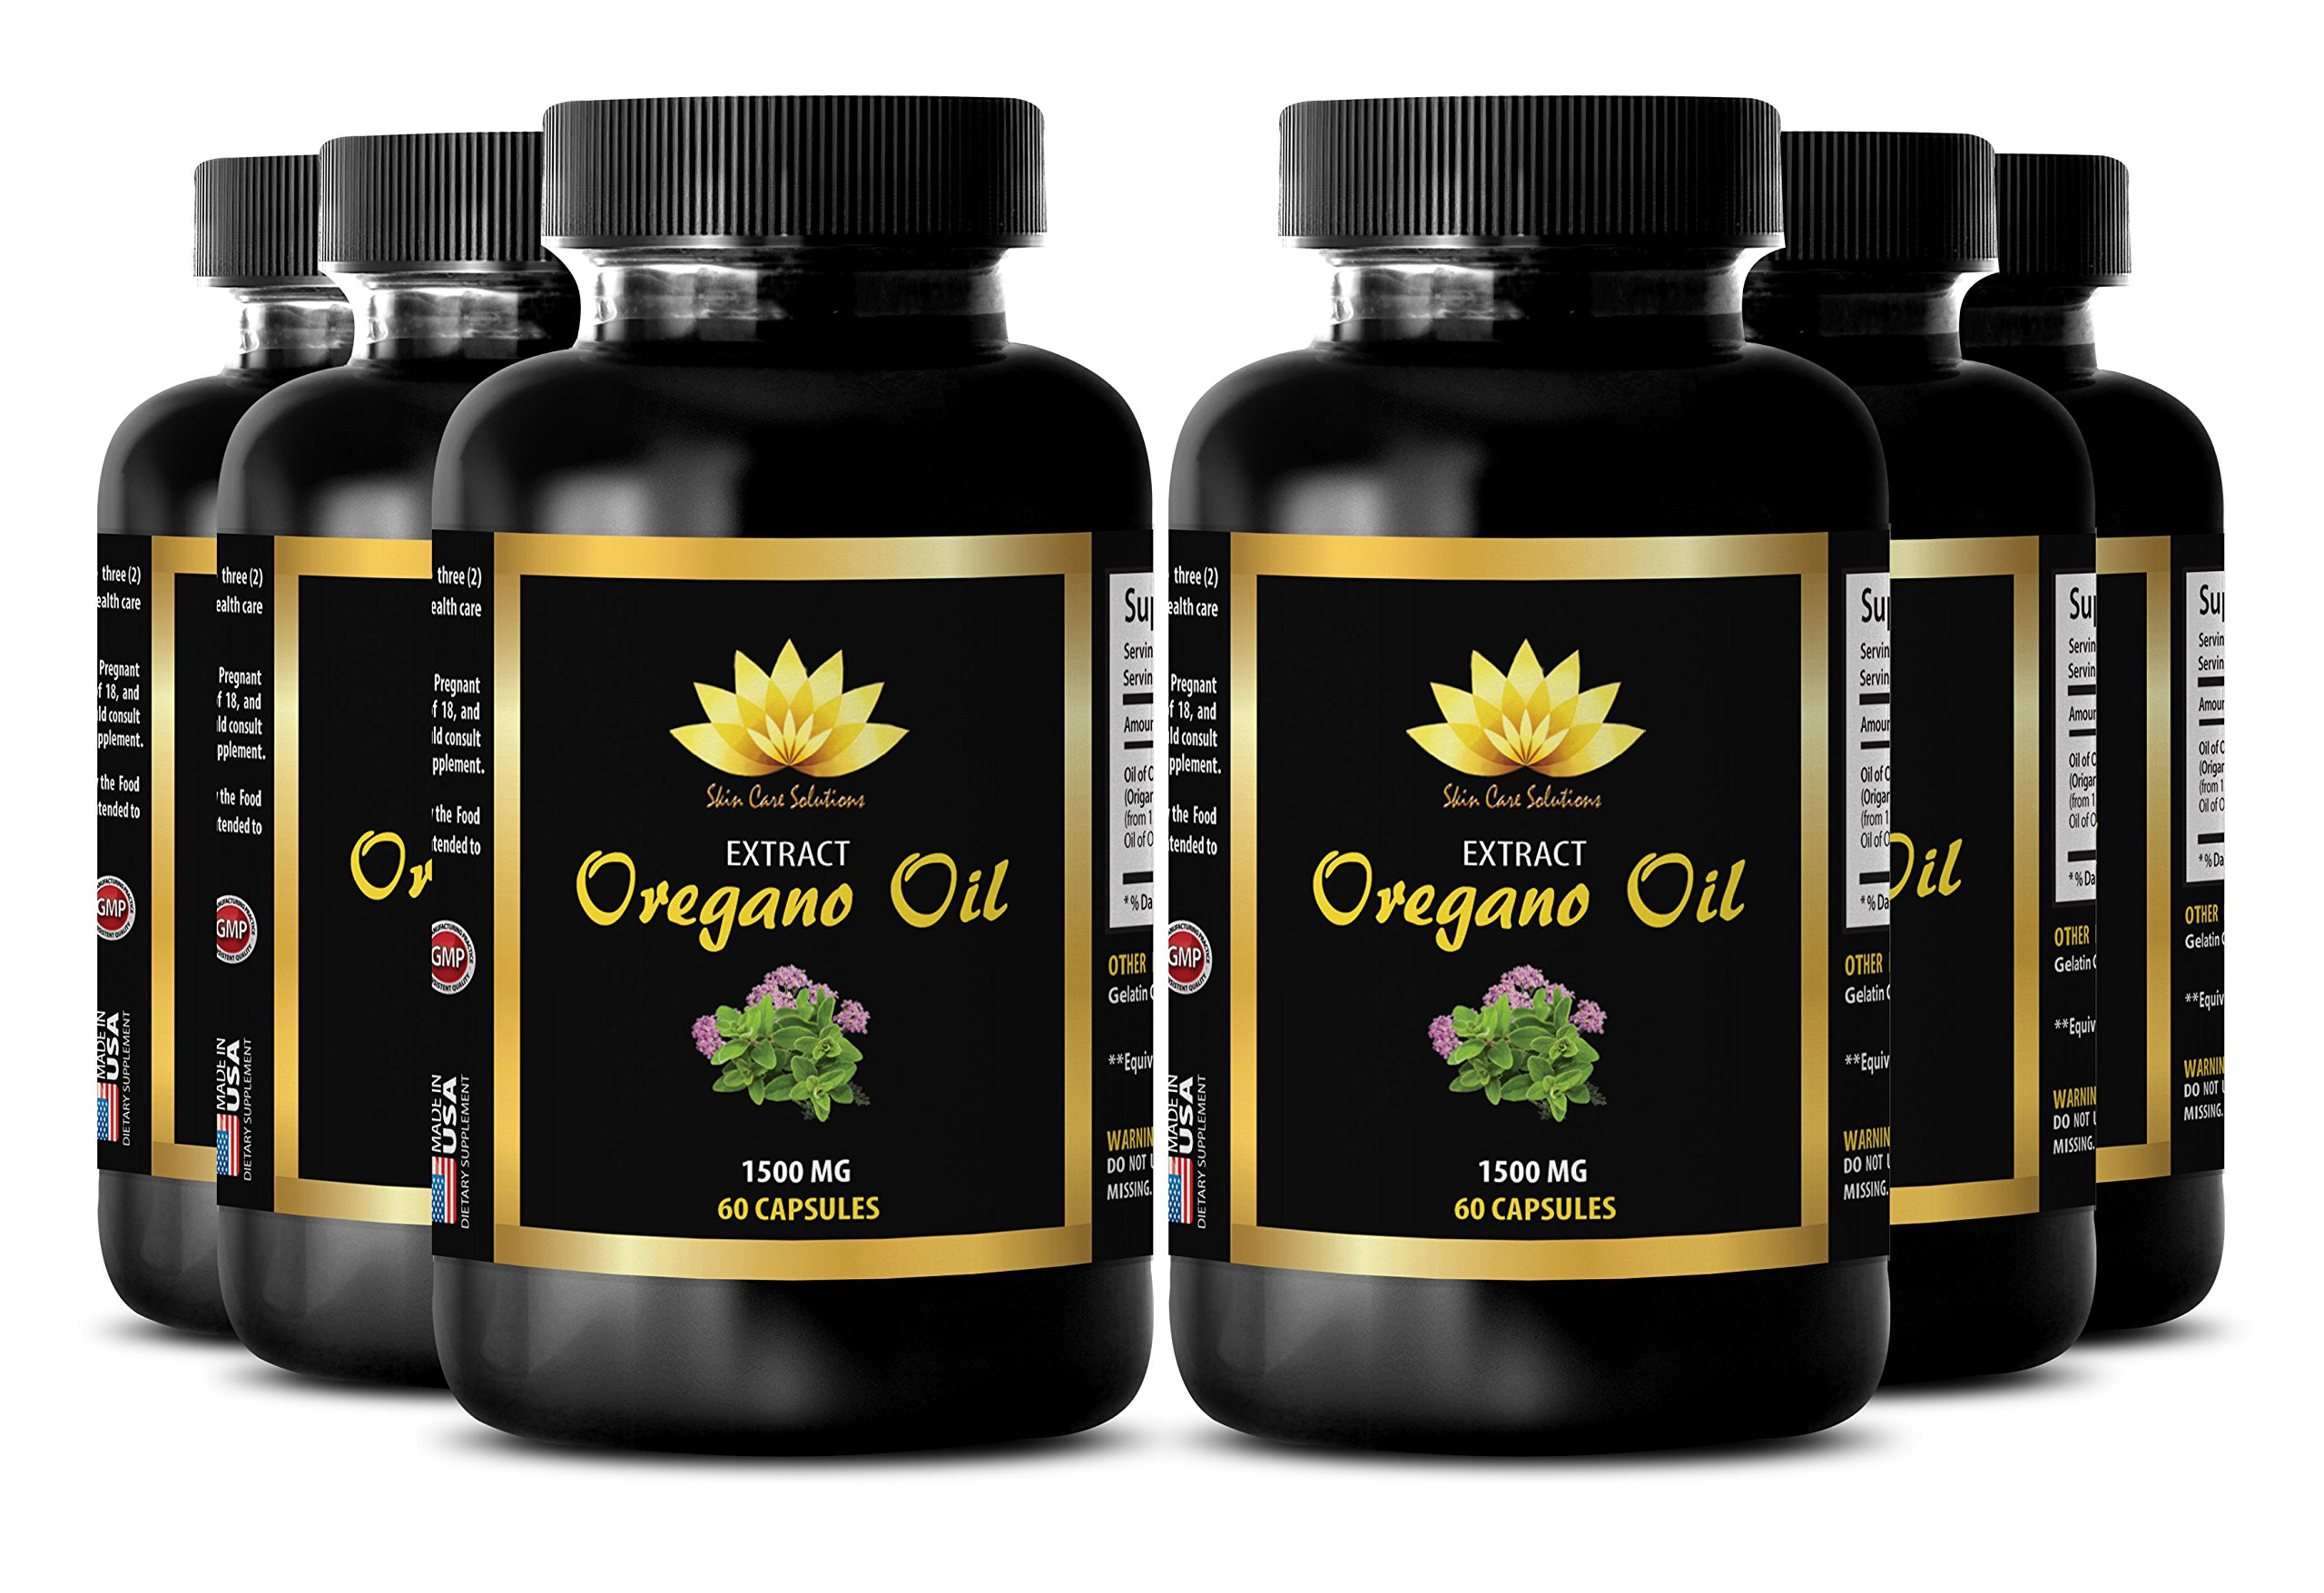 Anti fungal supplements - OREGANO OIL EXTRACT 1500mg - Oregano vulgares oil - 6 Bottles 360 Capsules by SKIN CARE SOLUTIONS